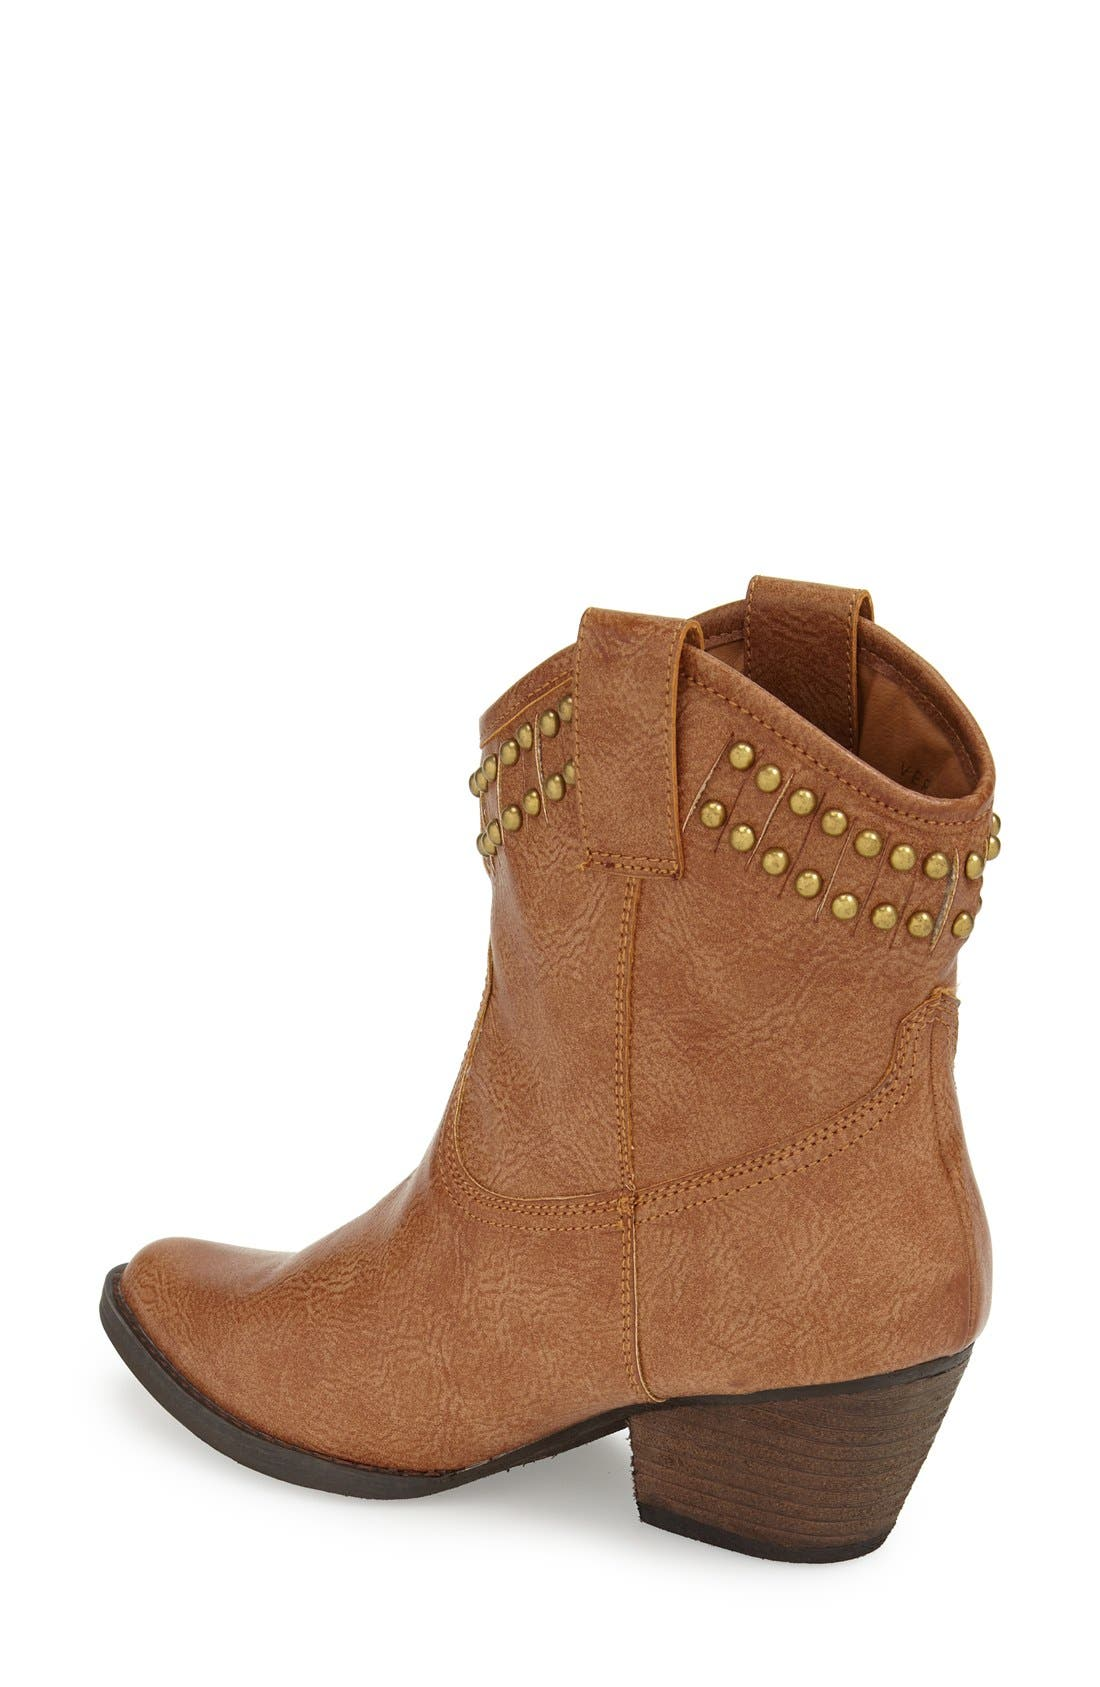 Alternate Image 2  - Very Volatile 'Lunet' Studded Western Bootie (Women)